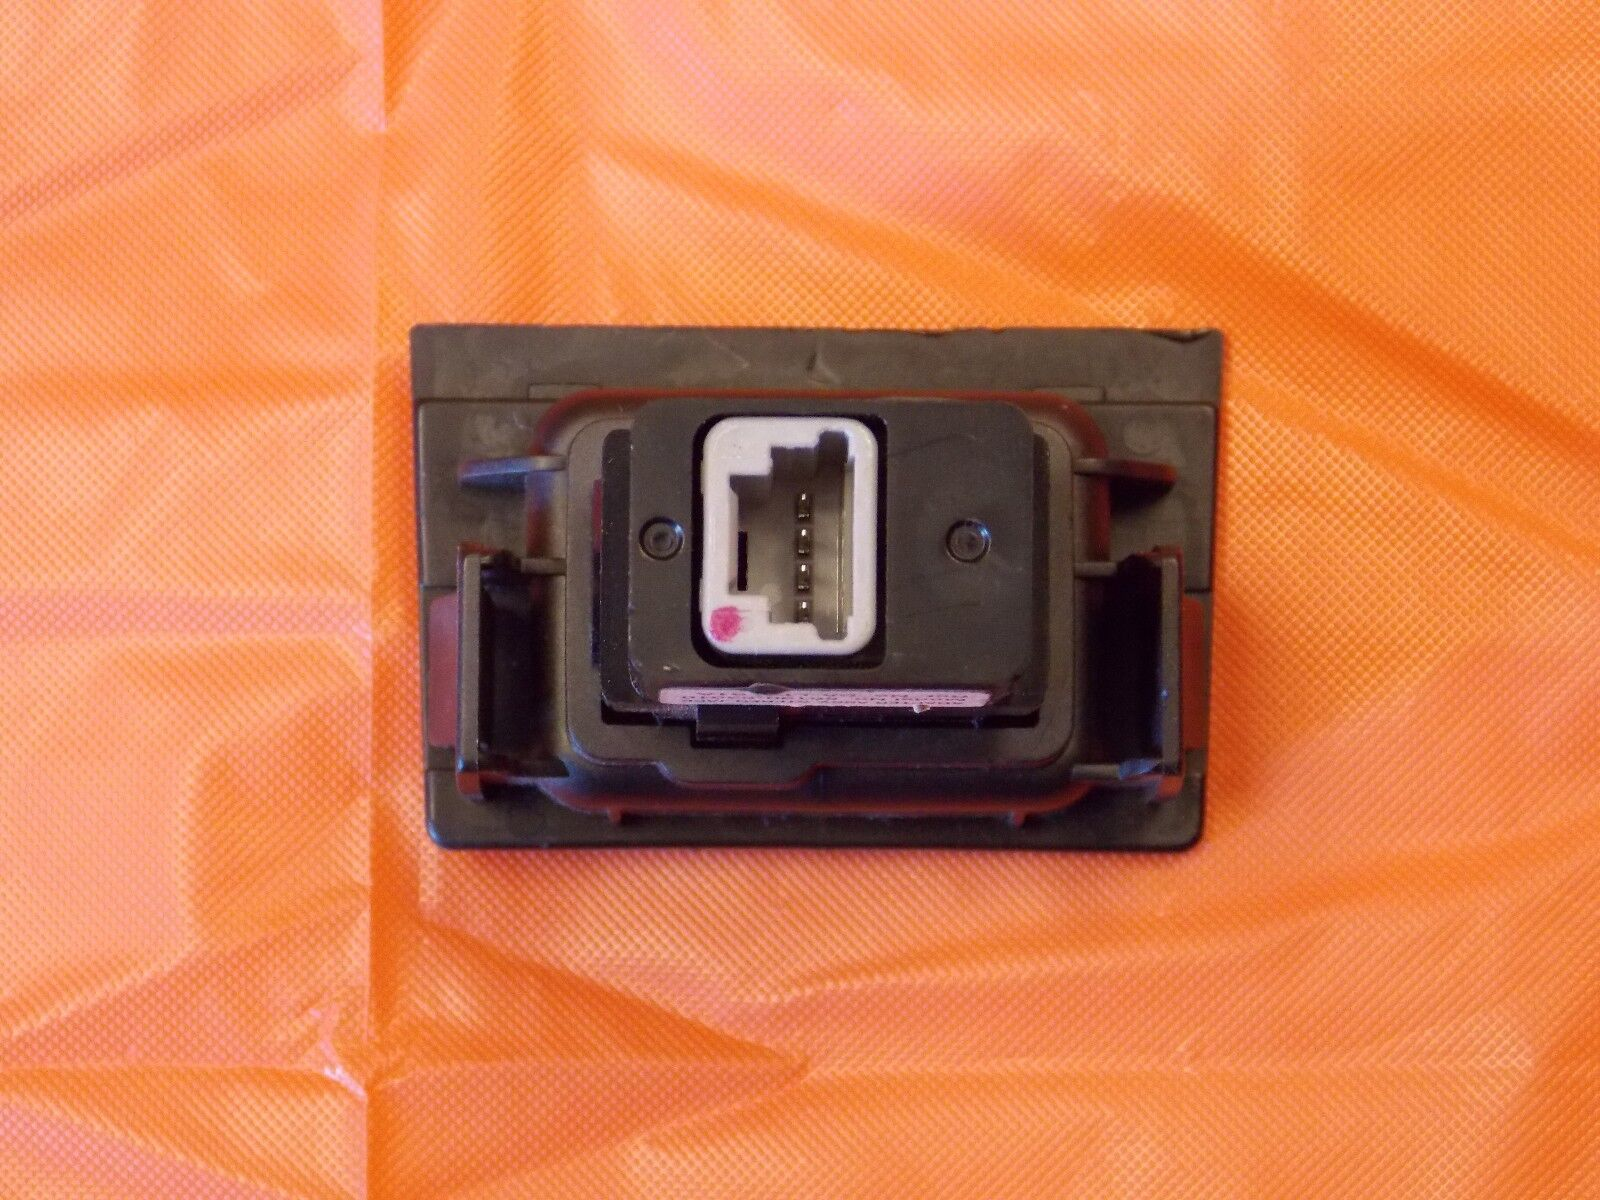 Ae86 Fuse Box Used Toyota Electrical Parts For Sale Lexus Original Aux Auxiliary Stereo Jack Adapter Oem 86190 53010